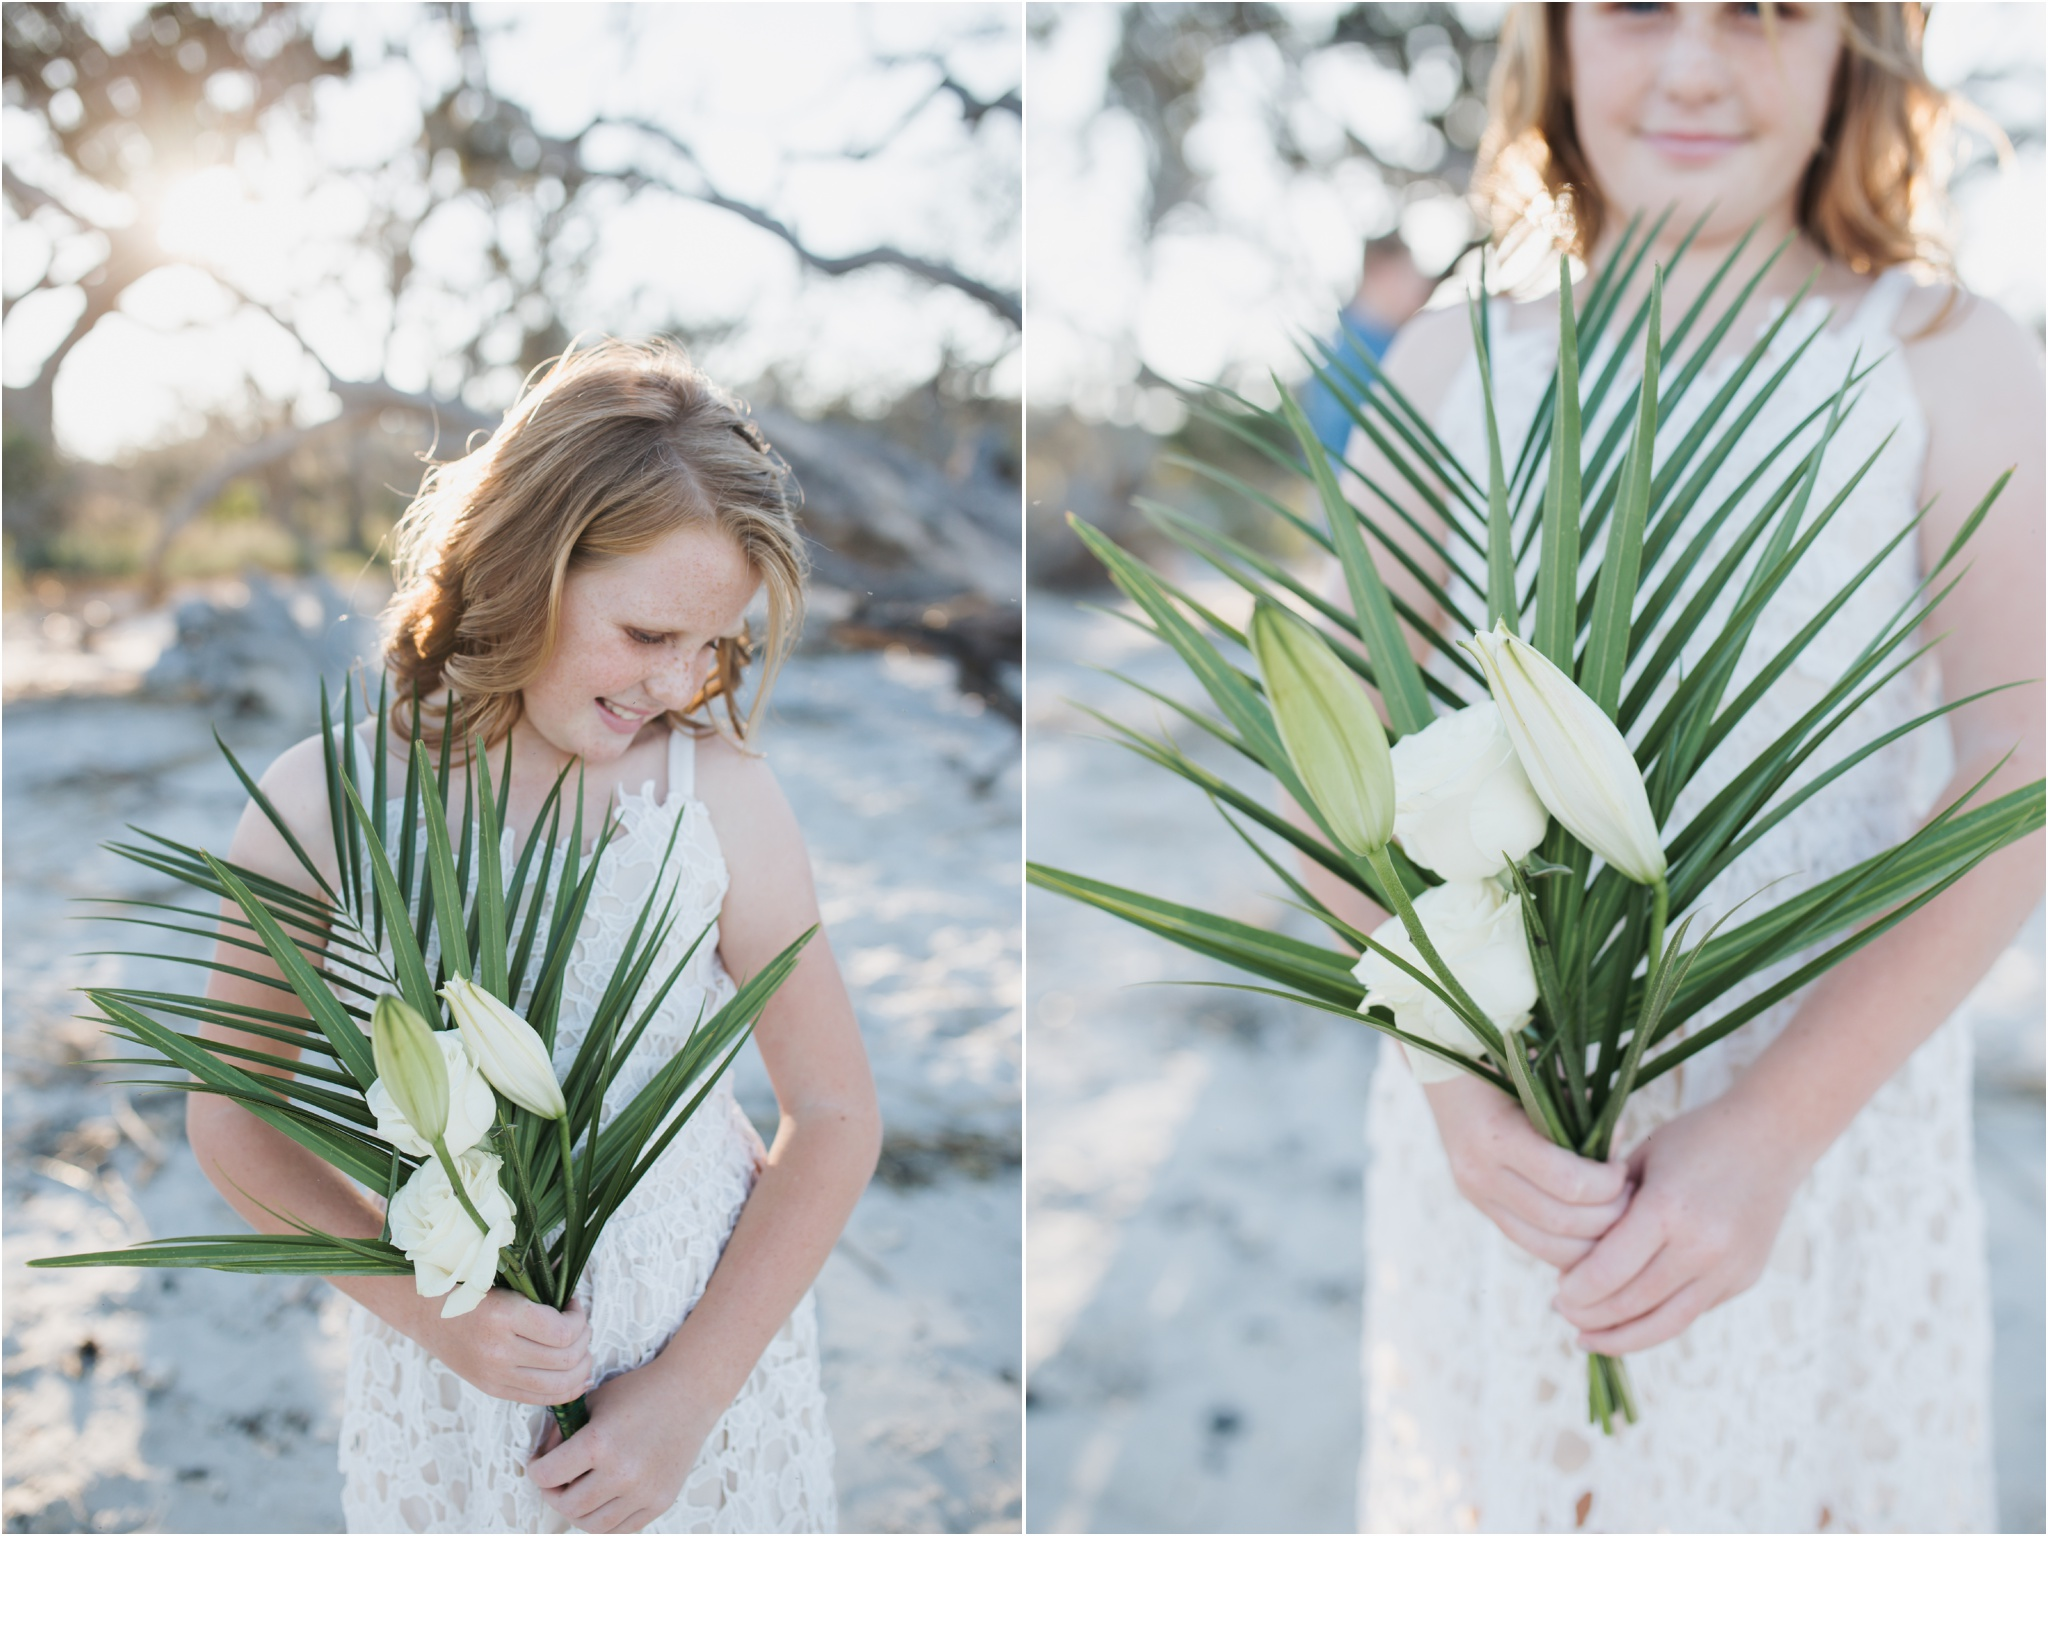 Rainey_Gregg_Photography_St._Simons_Island_Georgia_California_Wedding_Portrait_Photography_1584.jpg